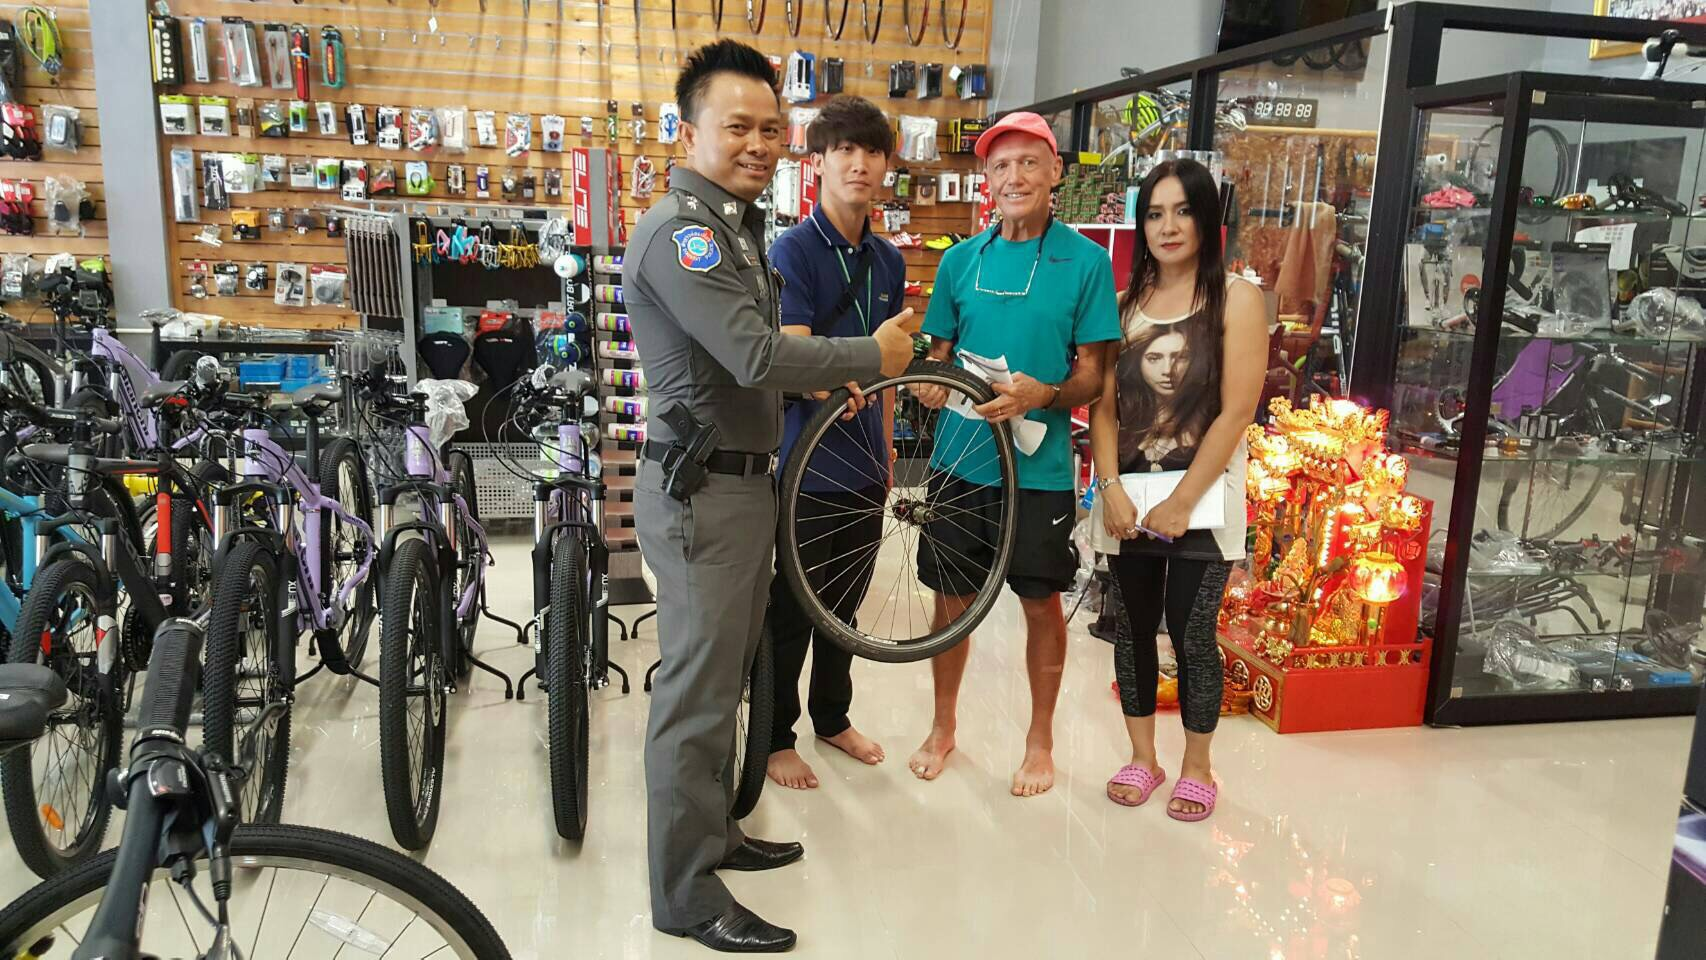 Australian Rodney Arthur Ellis was happy to get his bike repaired thanks to Pattaya's Tourist Police.